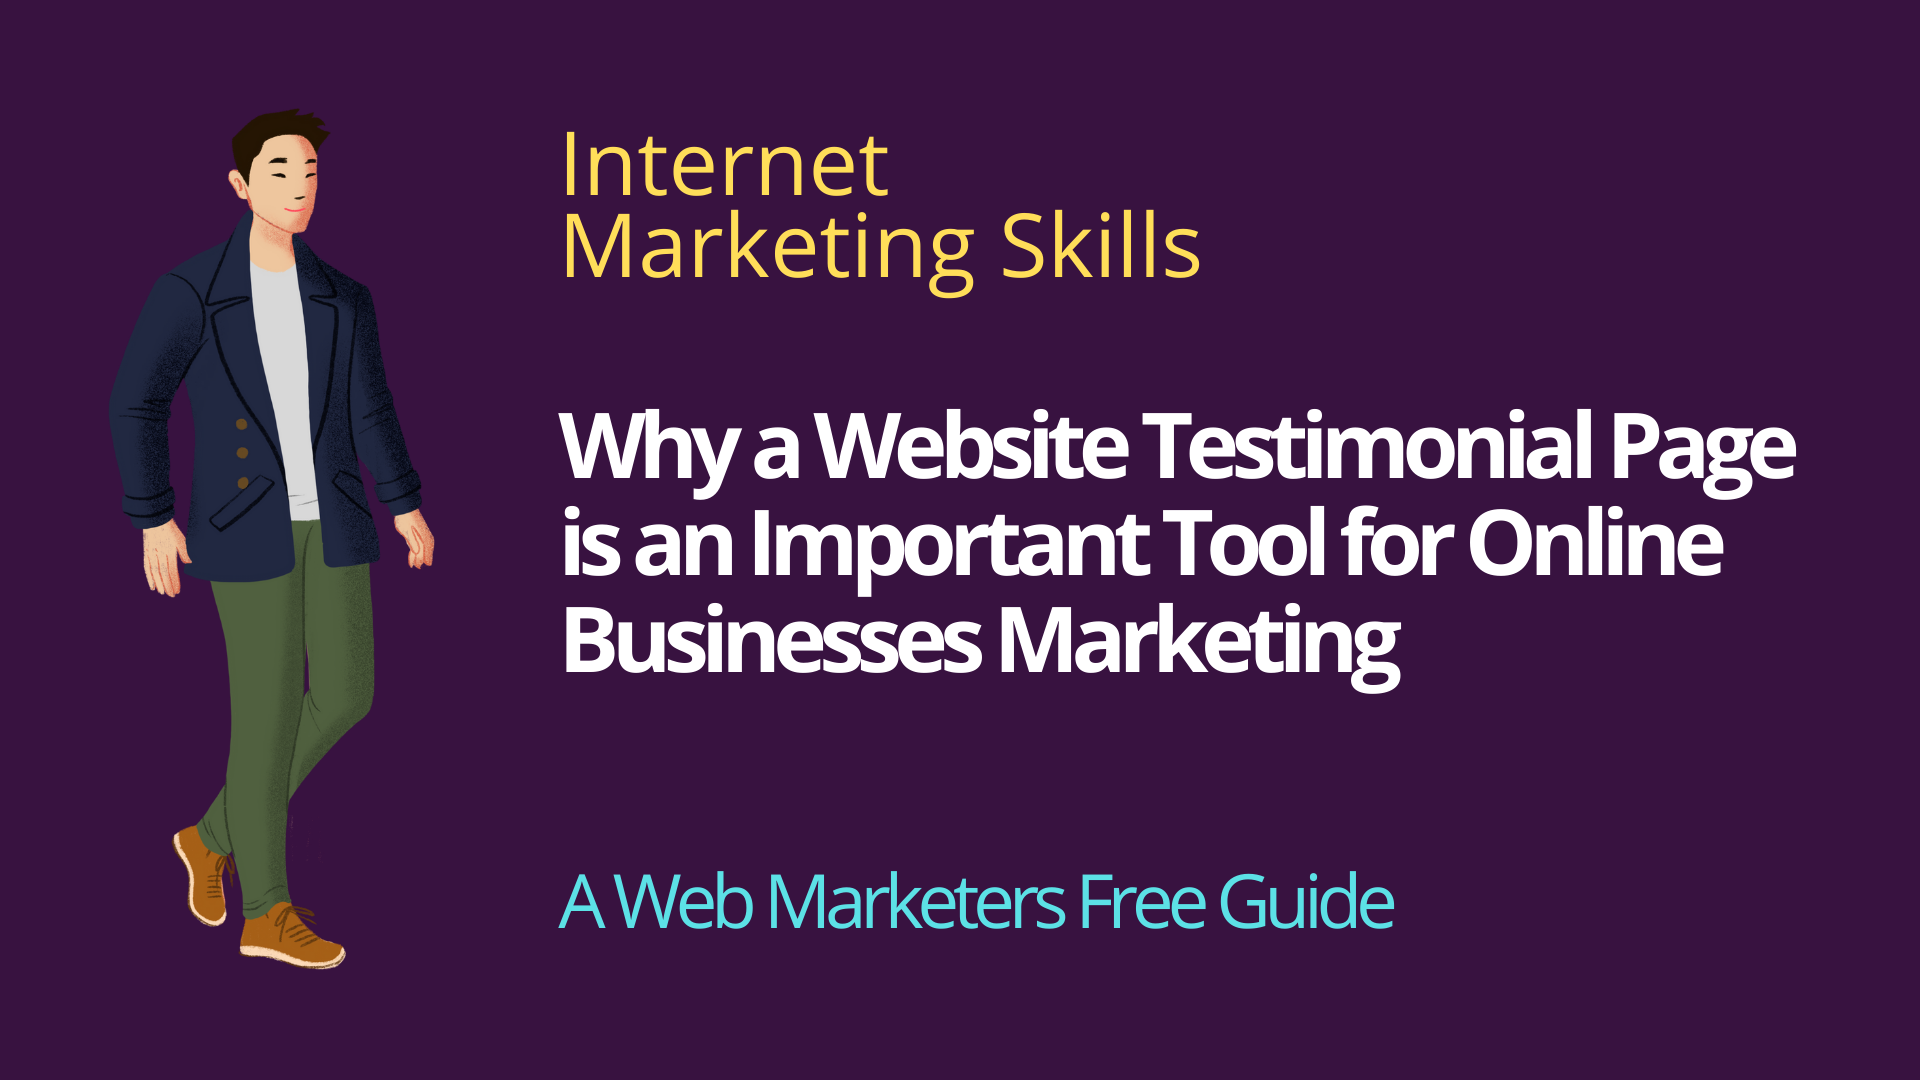 What is a Website Testimonial Page?